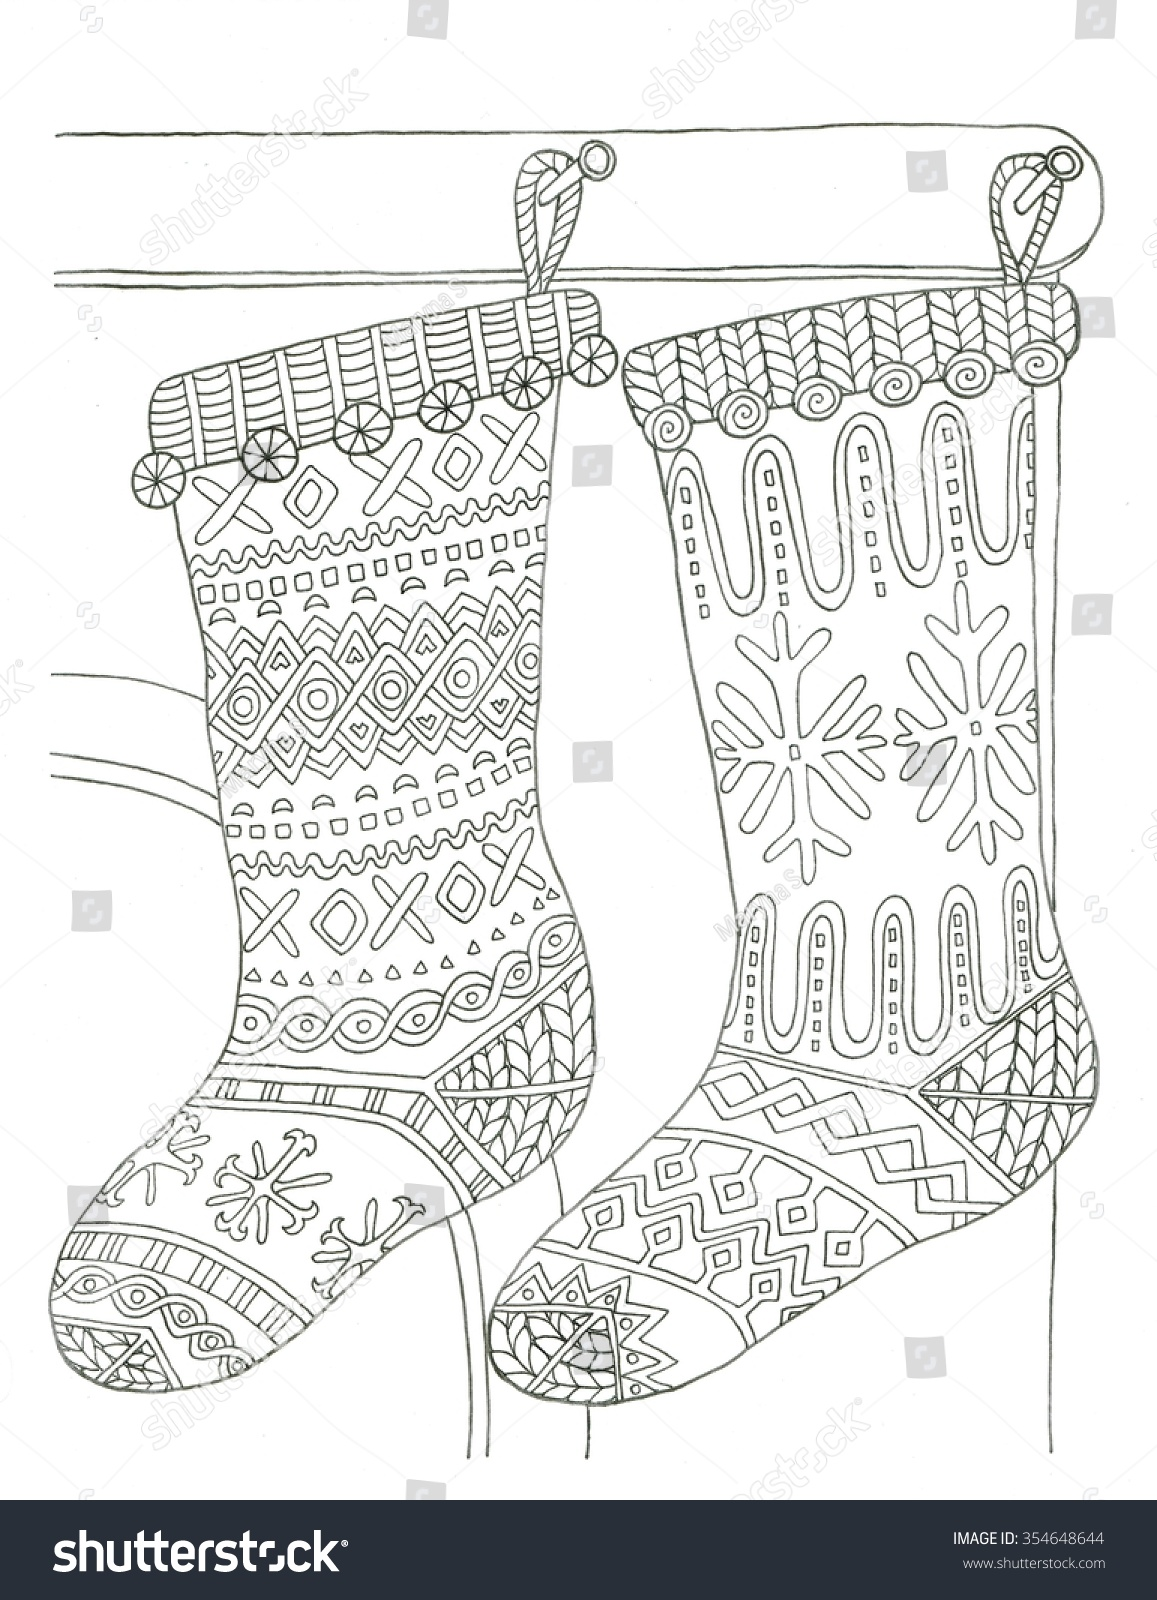 Christmas Stockings Coloring Page Stock Illustration